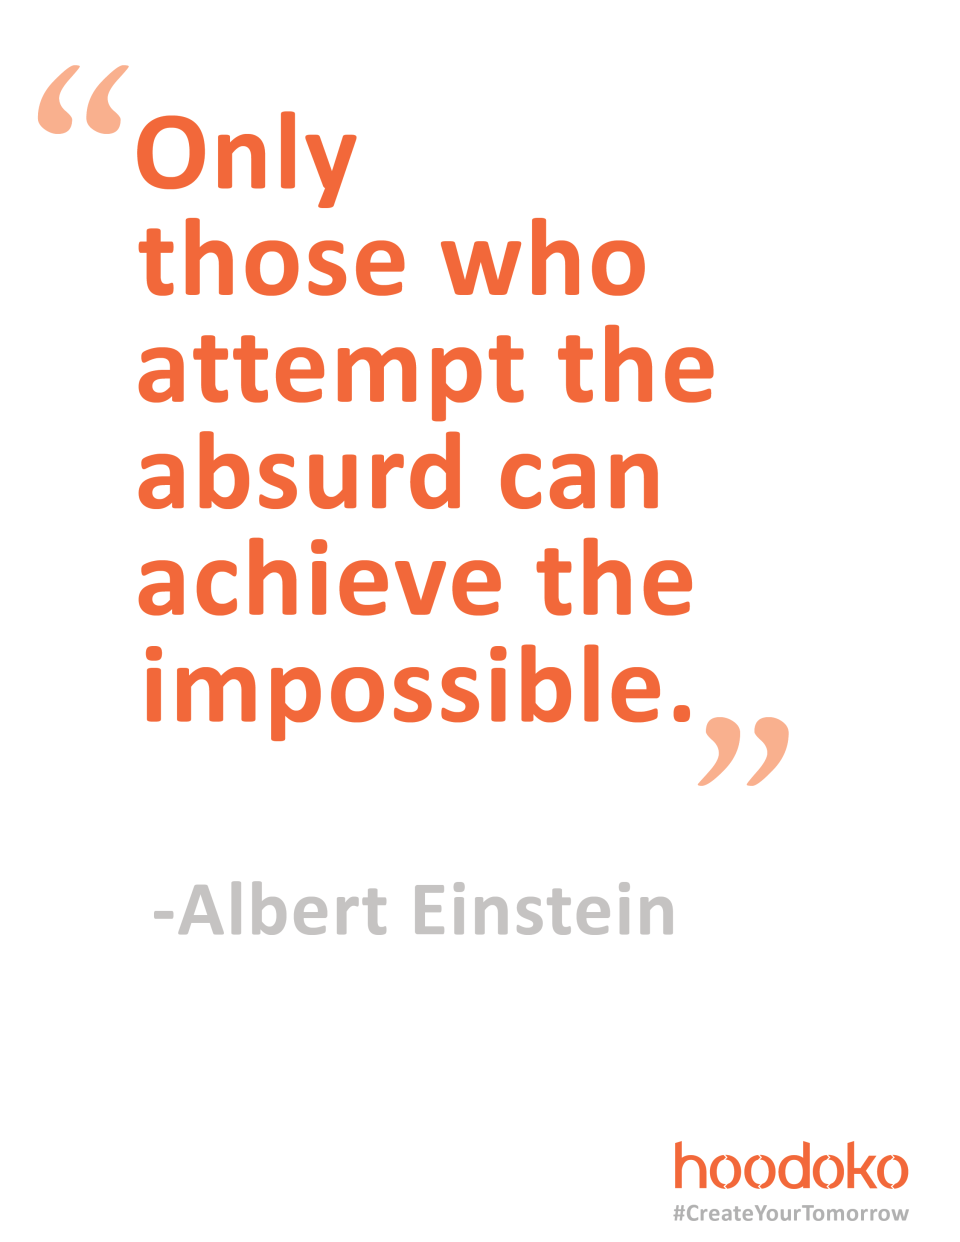 INSPIRATION FROM ALBERT EINSTEIN